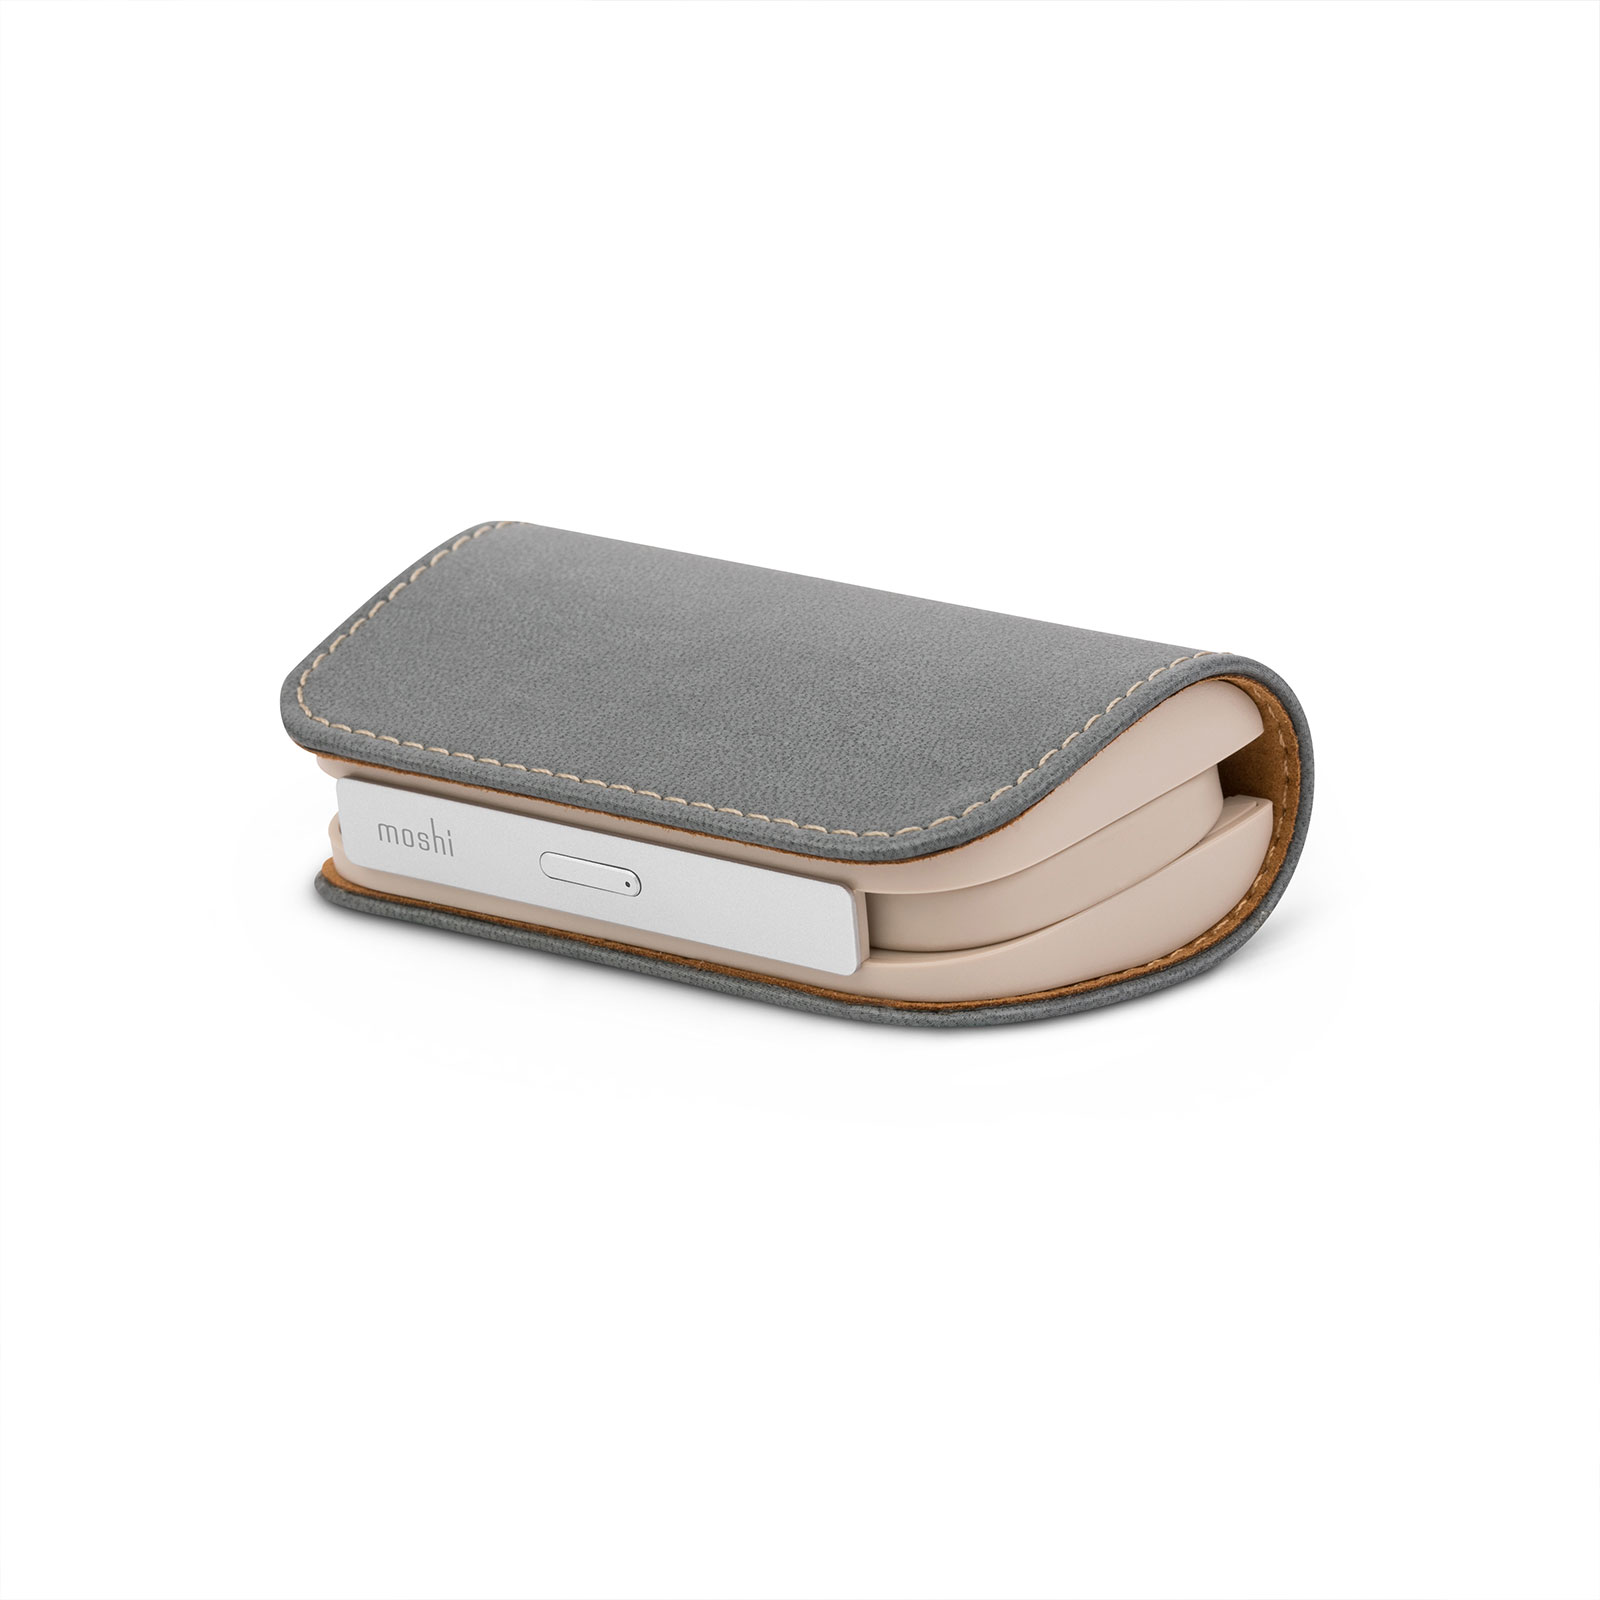 IonGo 5K Duo Portable Battery with Built-in Lightning and USB-C Cables Review